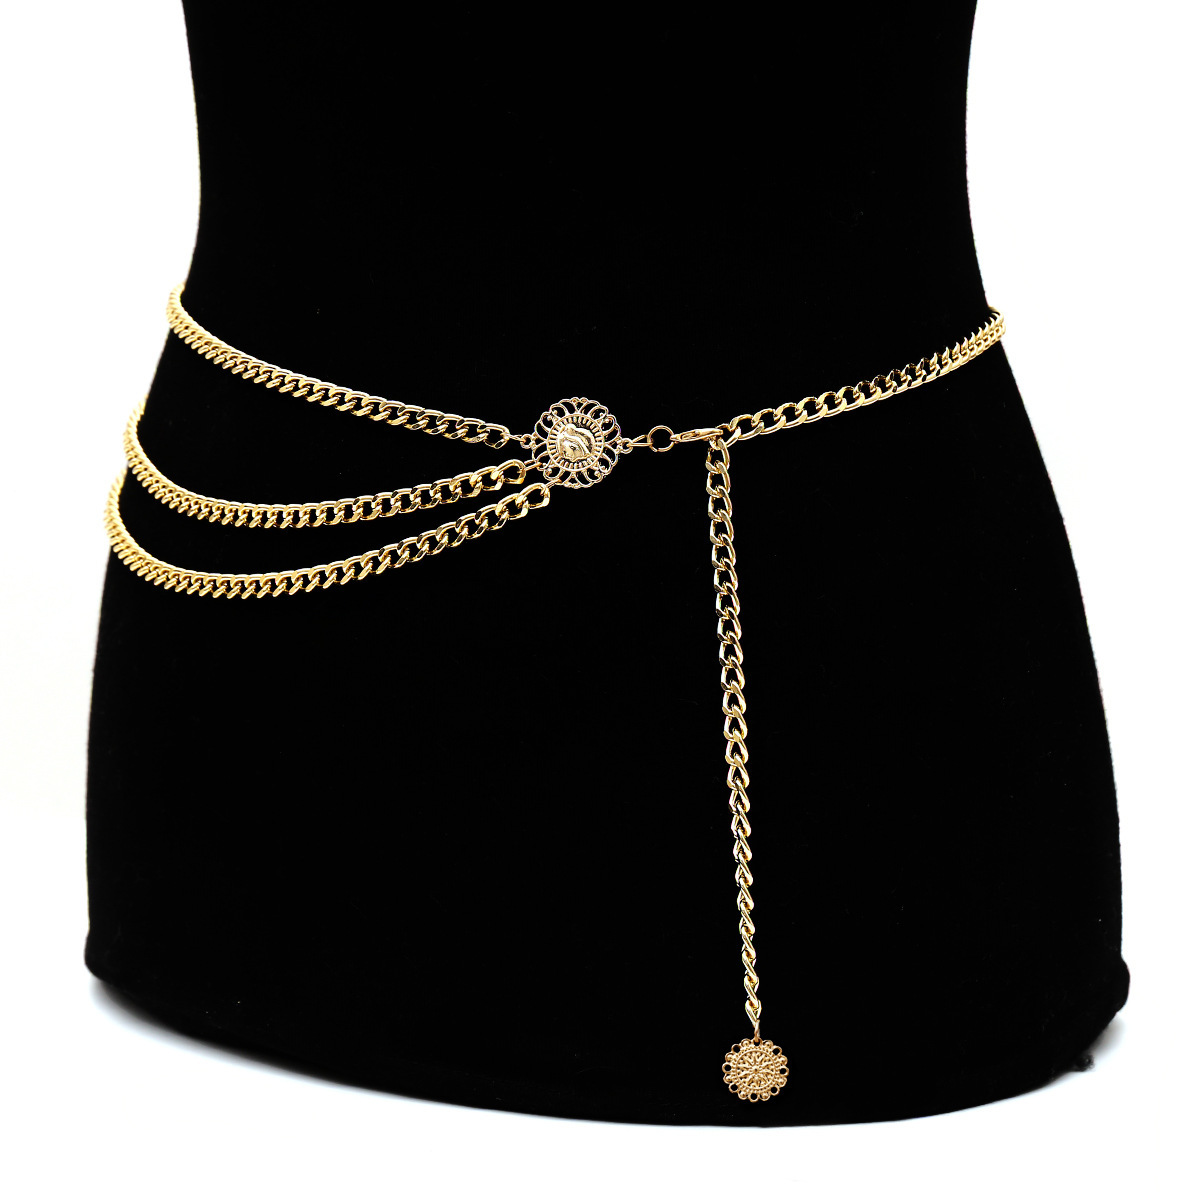 HTB16OIoXfjsK1Rjy1Xaq6zispXaK - New Fashion Luxury Designer Brand Metal Chain Belt For Women Golden Coin Personality Hip Hop Style Female Tassel Belts Ceinture